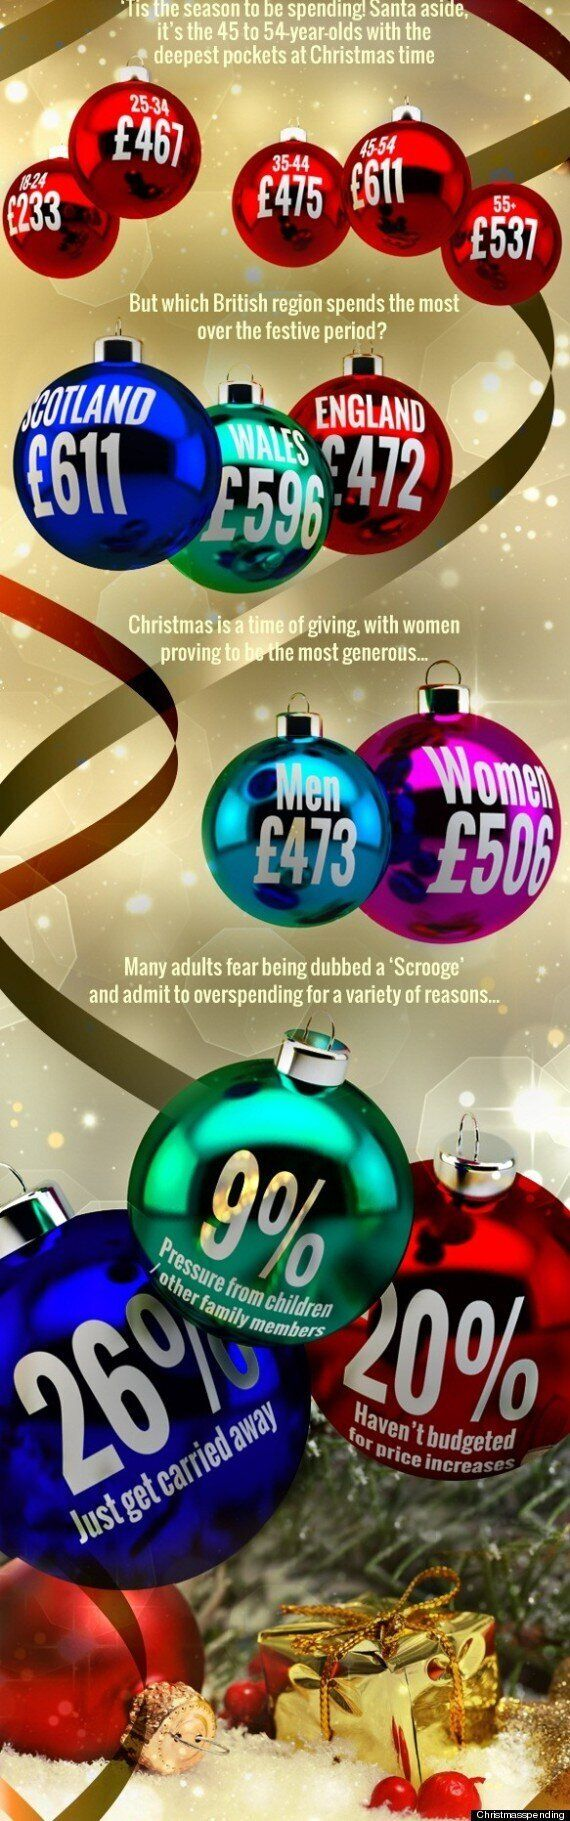 Christmas 2013: Scots 'Biggest Spenders In Britain' On